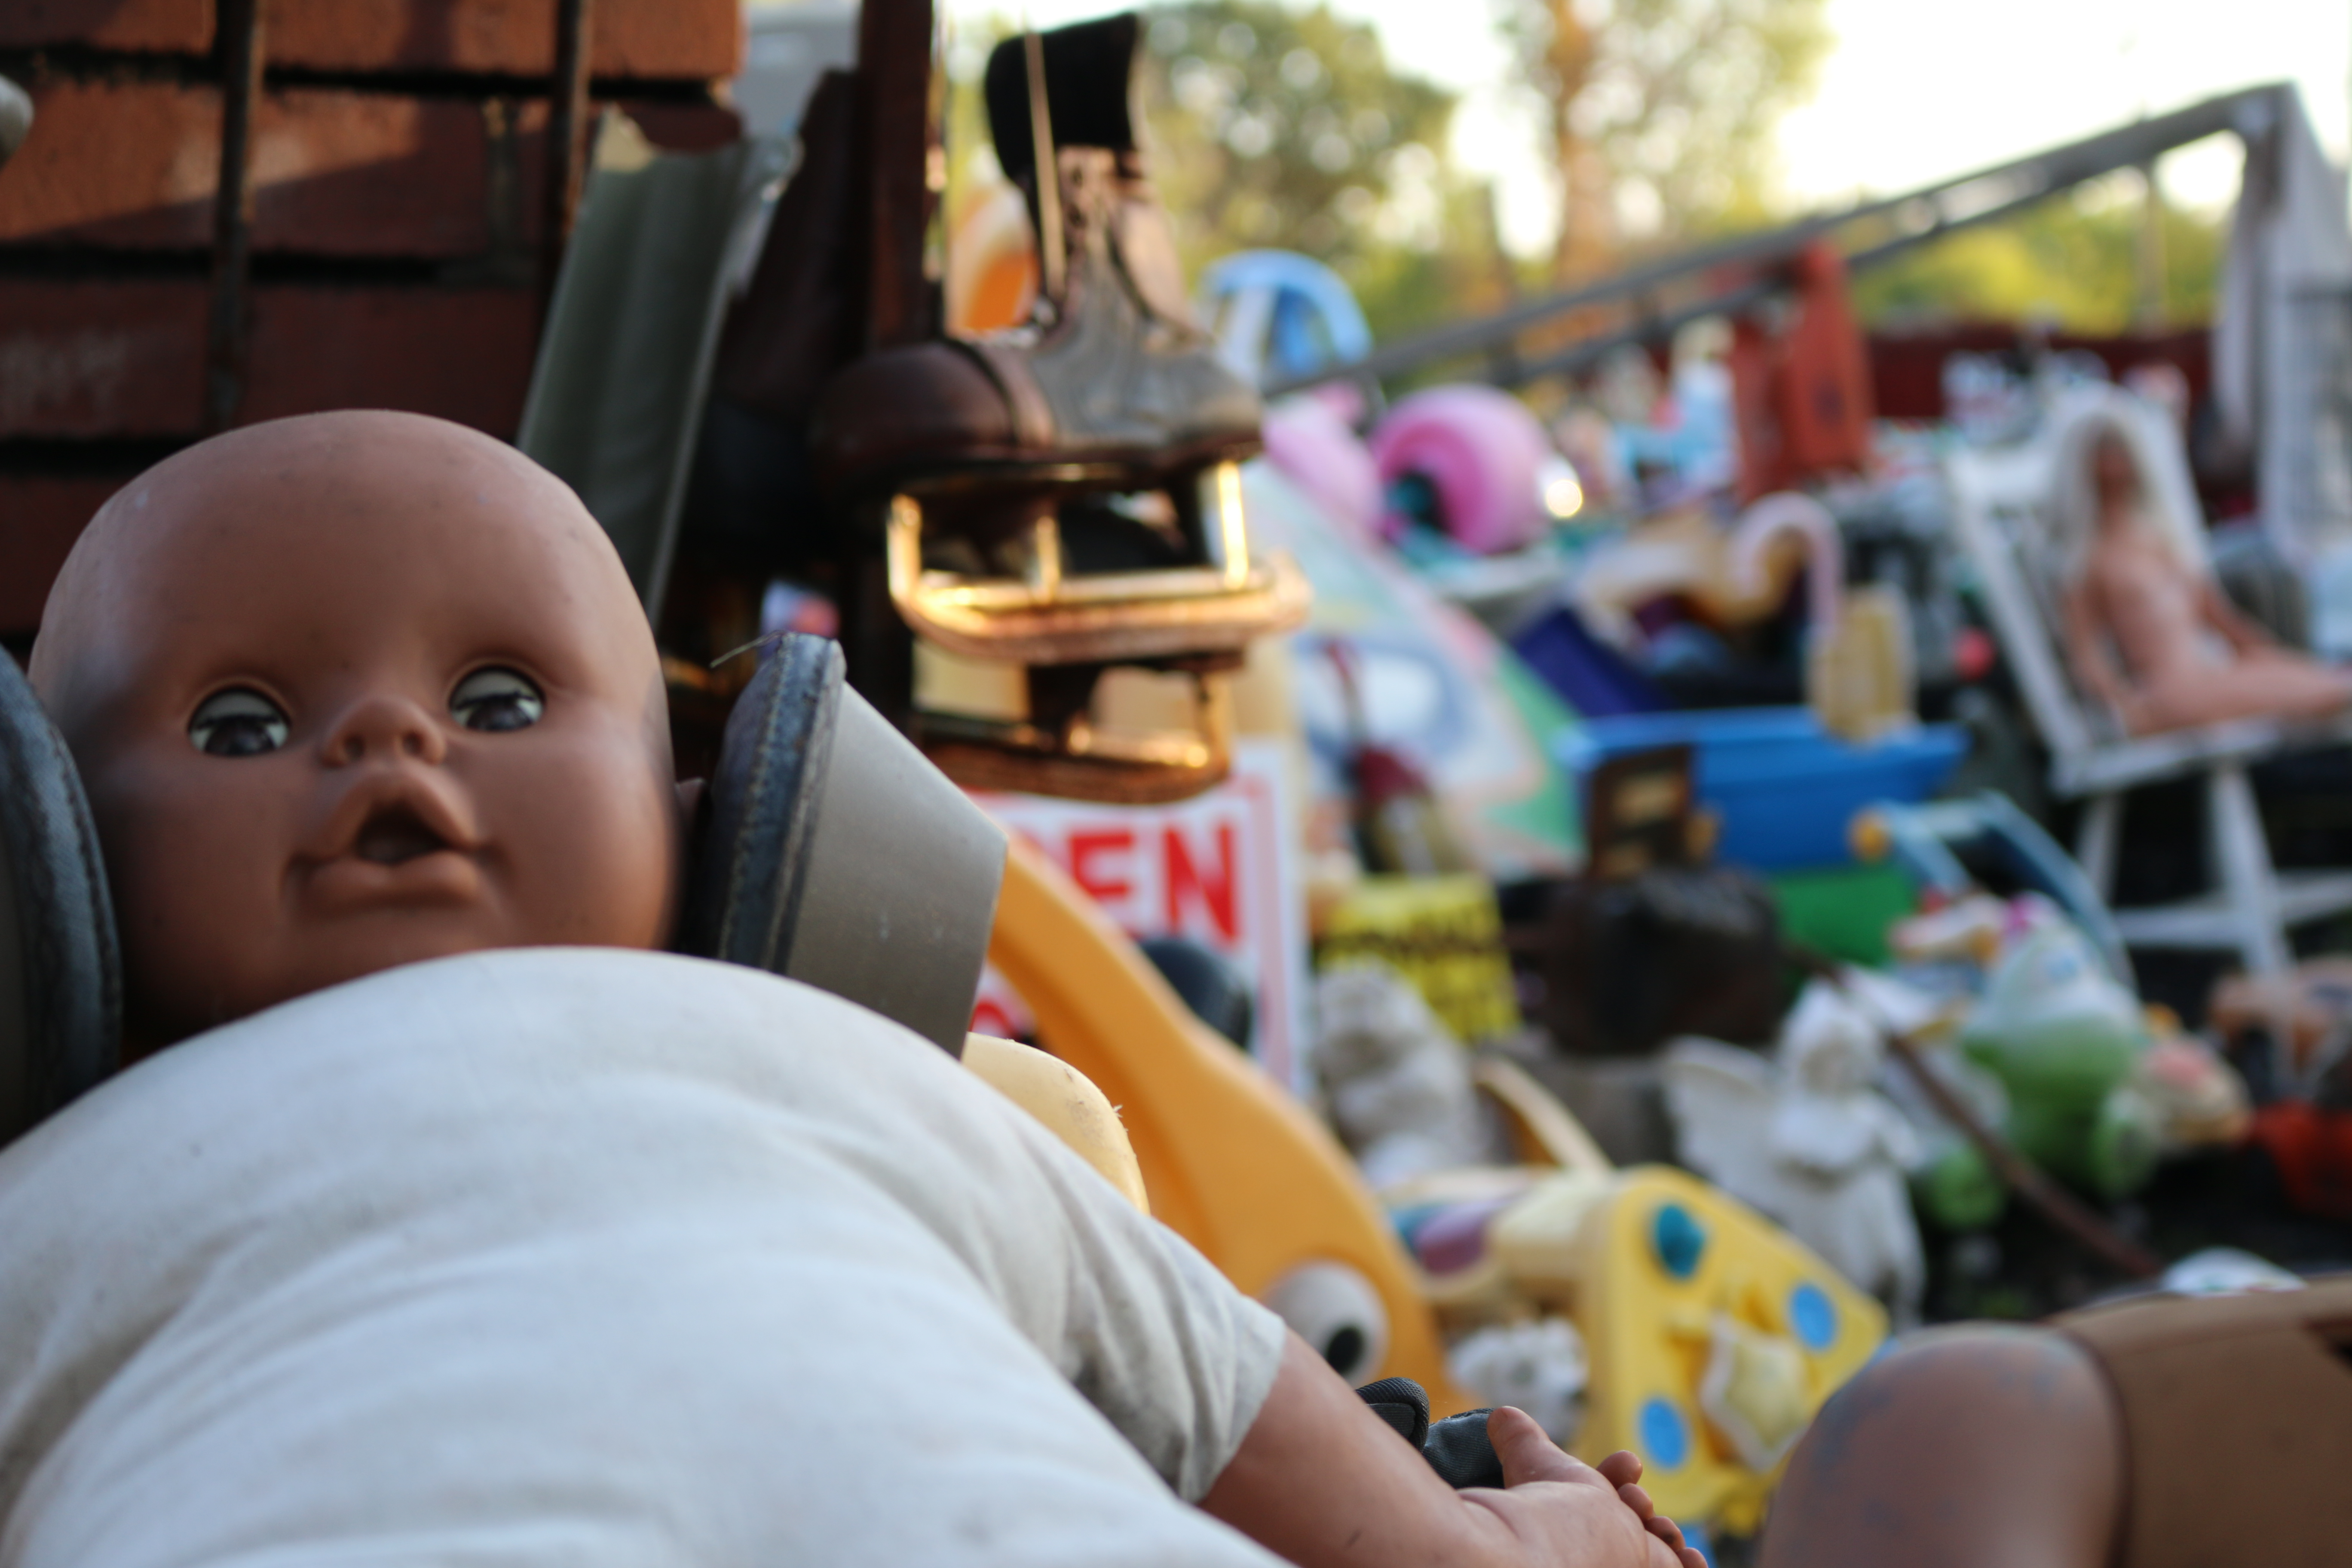 Close up of baby doll with colorful thrown away toys blurred in background.